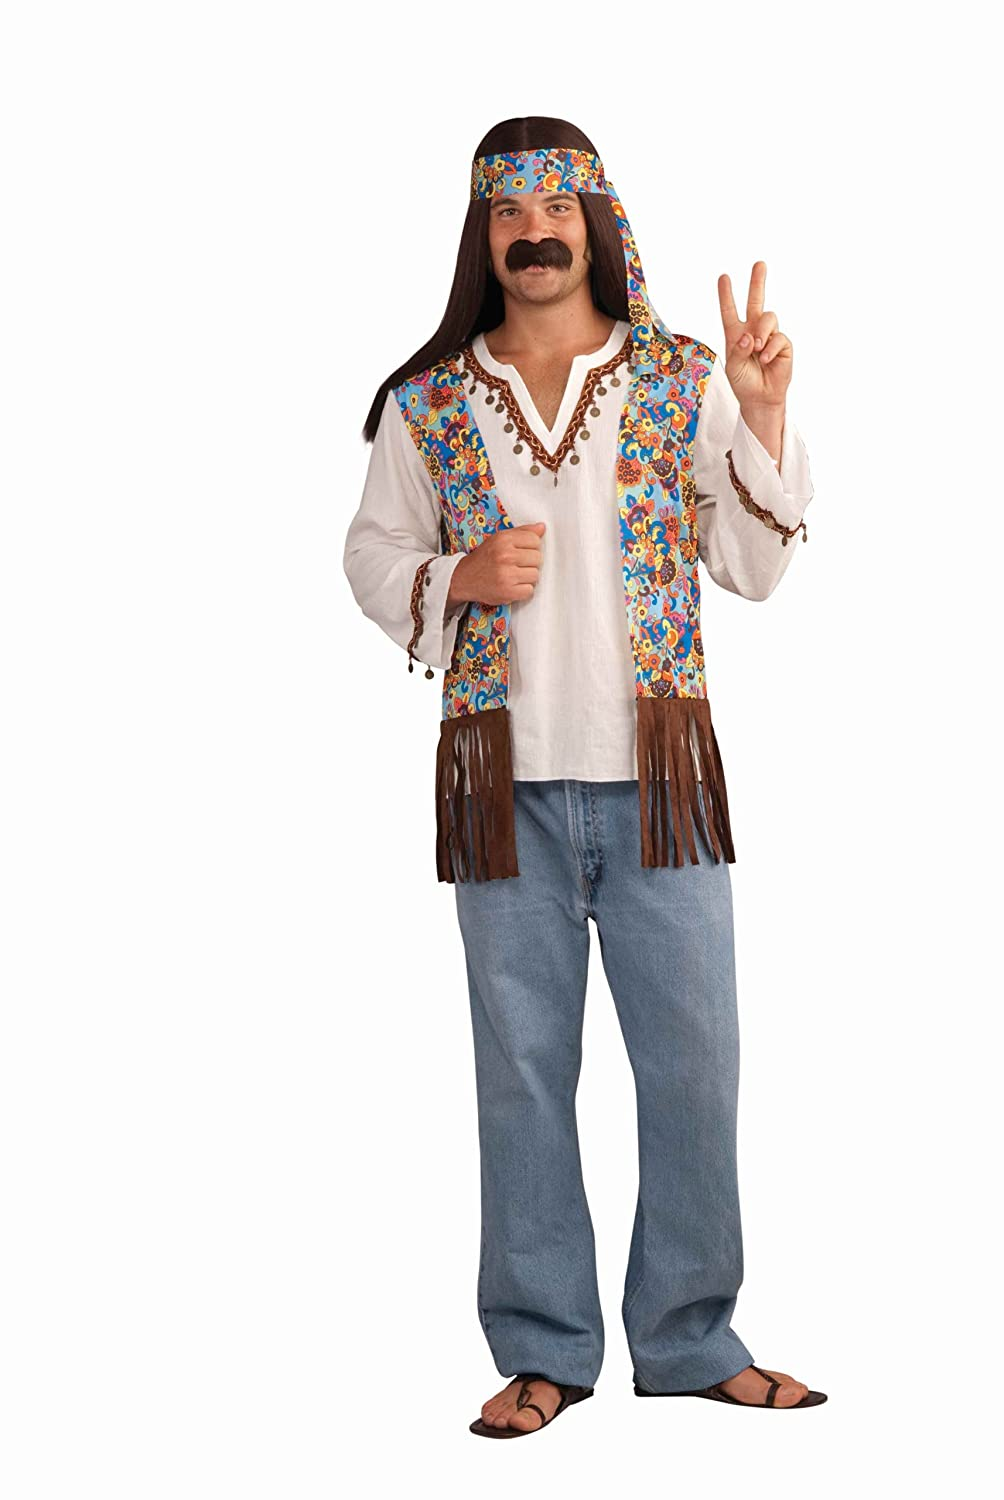 Hippie Clothing Men | Www.pixshark.com - Images Galleries With A Bite!